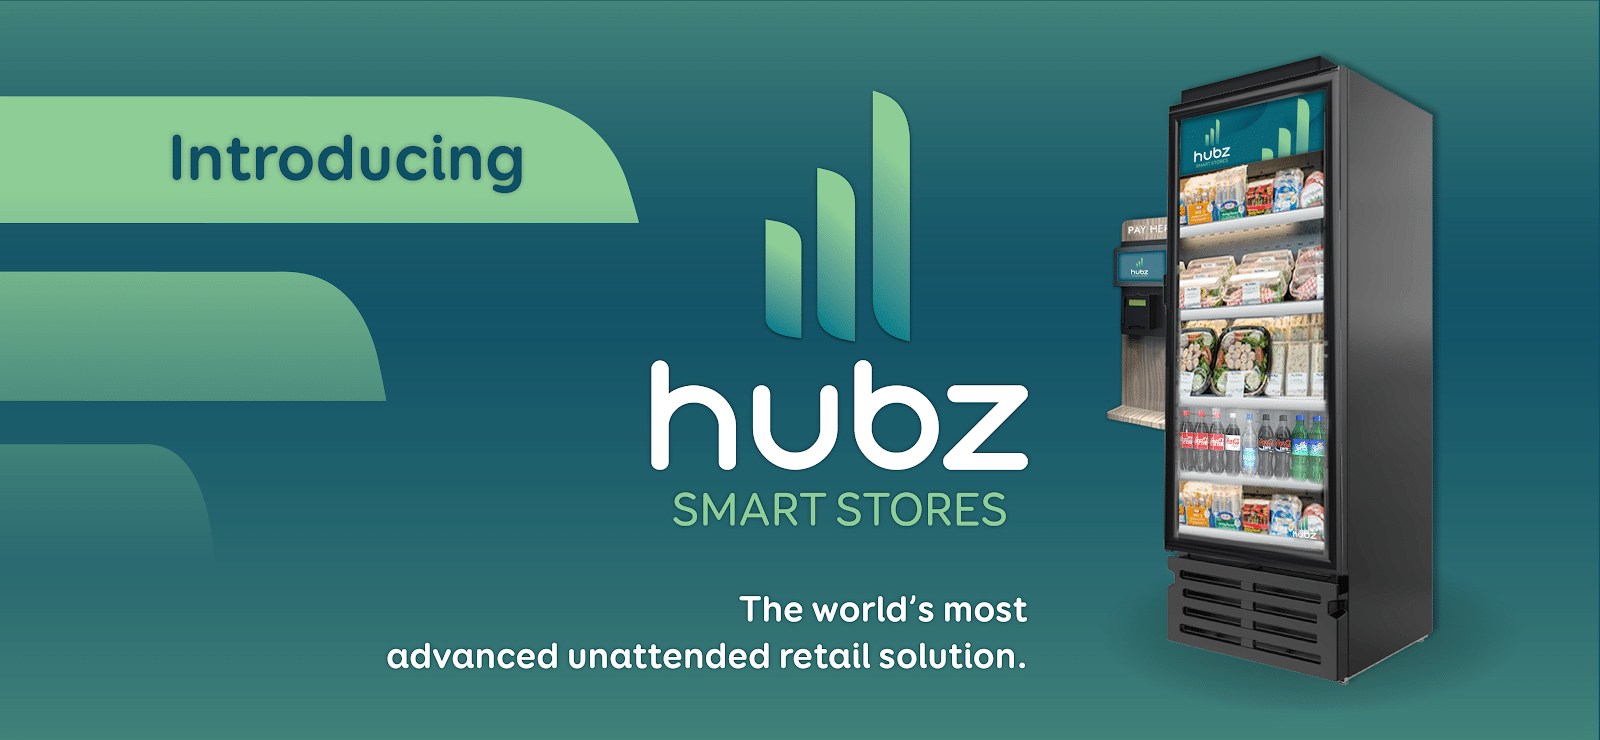 hubz automated retail coolers